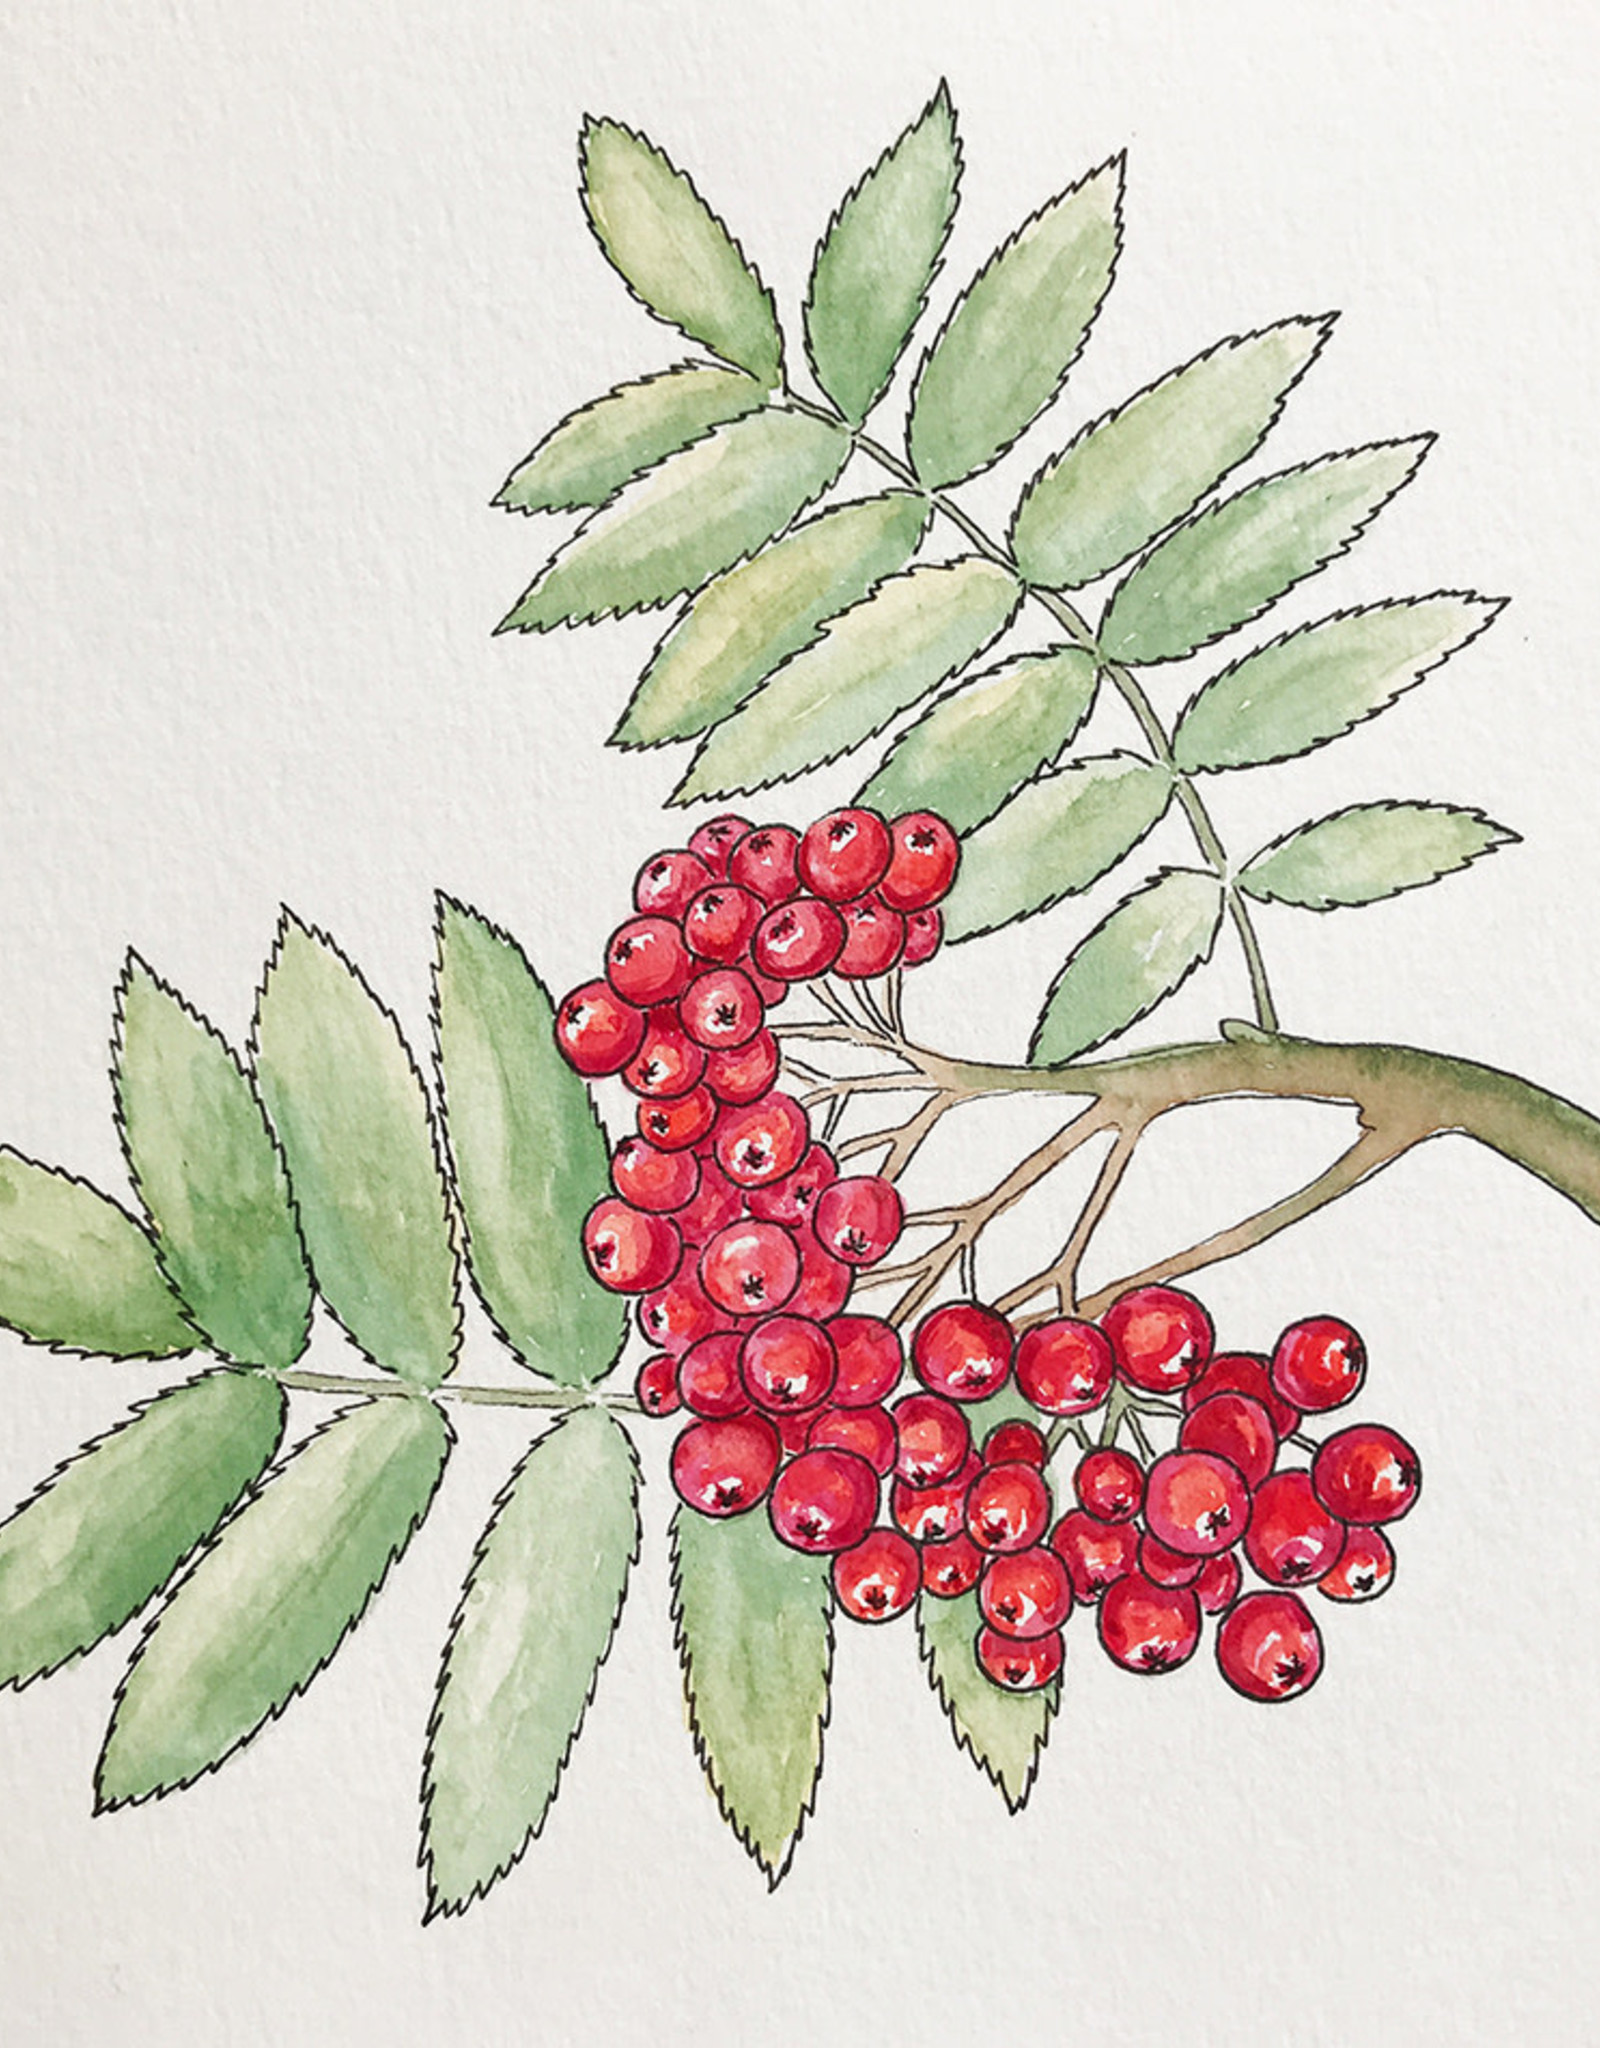 Tamara S W/C & Ink Rowan Berries Wed Dec 9 11:00 am to 12:30 pm